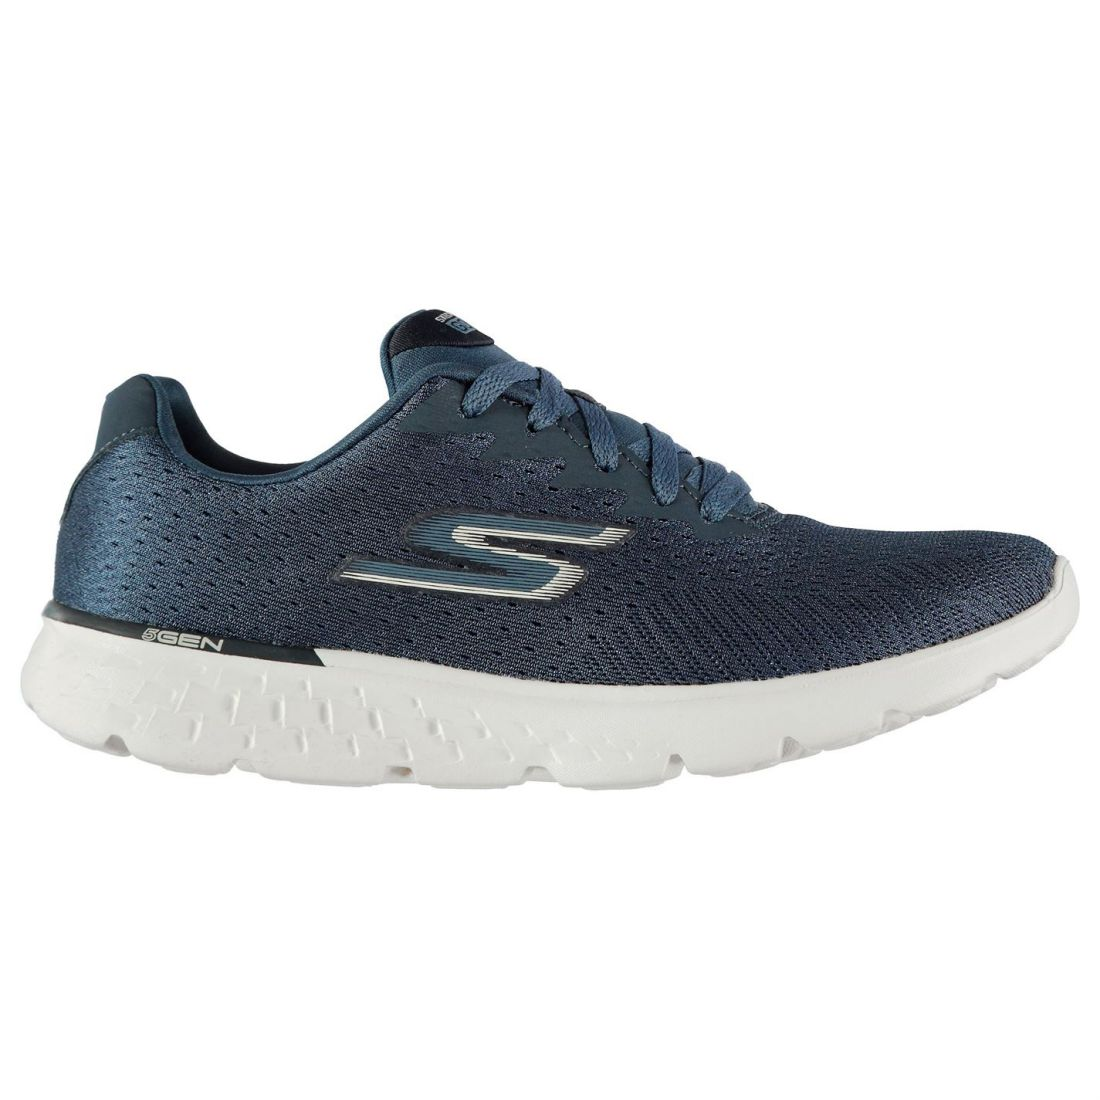 Skechers Go Run 400 Sneakers Ladies Runners Laces Fastened Padded Ankle Collar